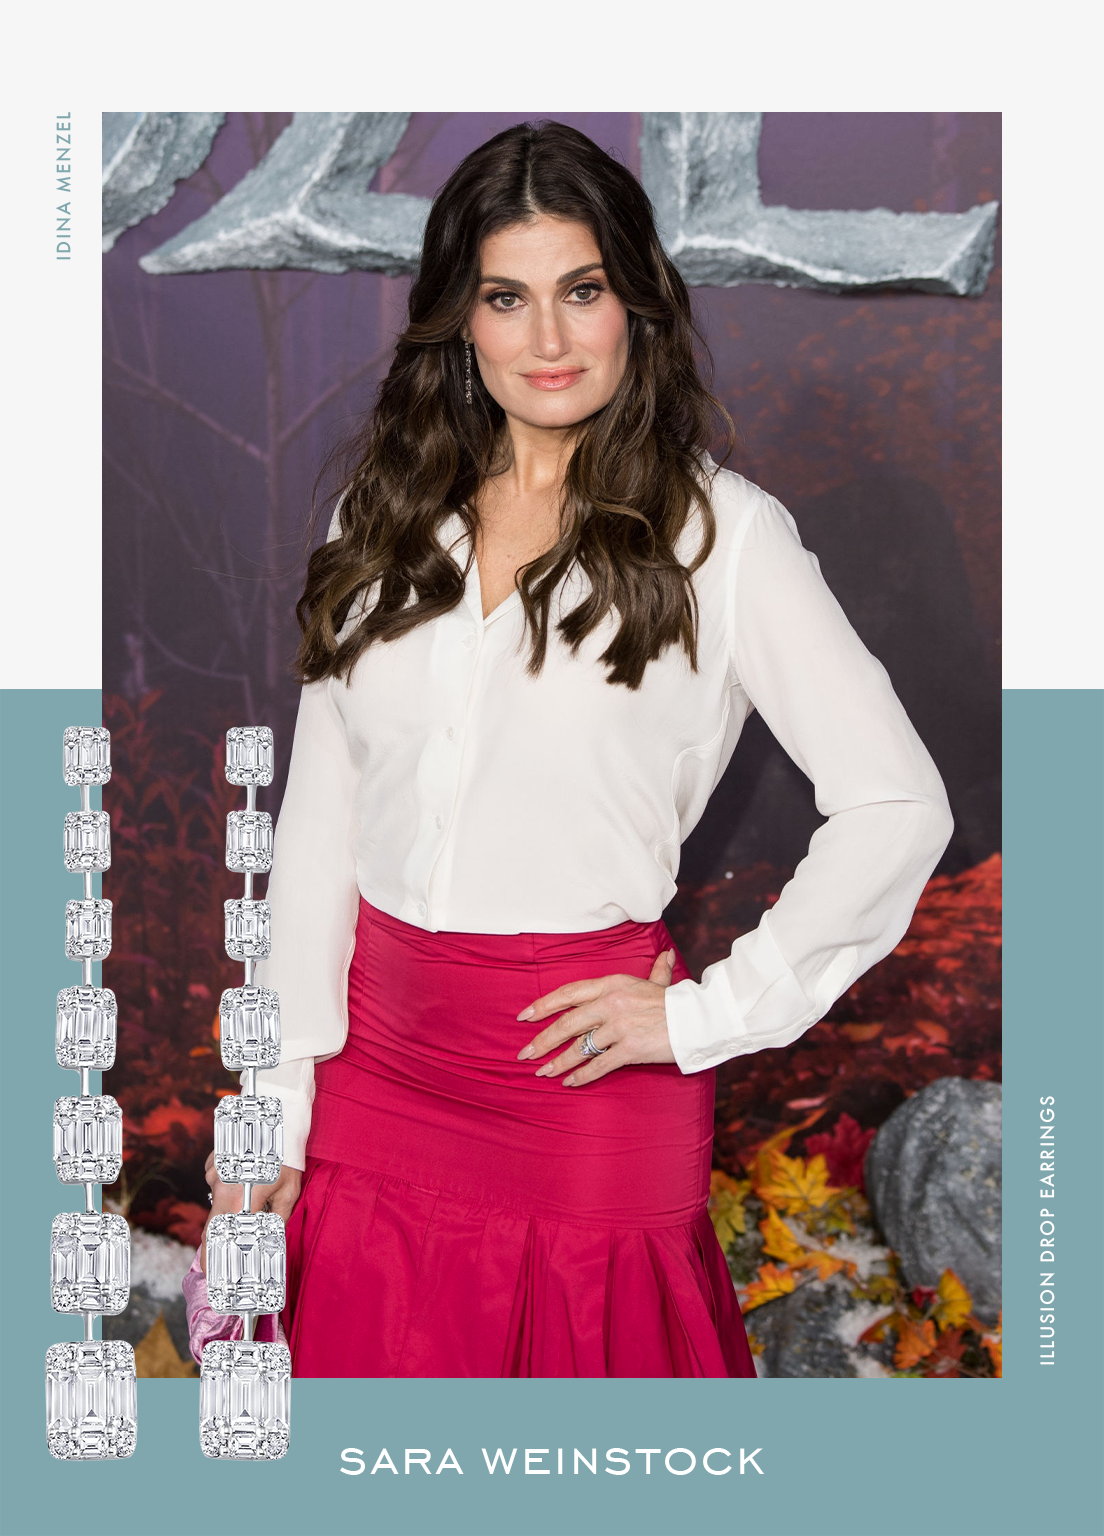 Idina Menzel in Sara Weinstock at the European premiere of Frozen 2 in London